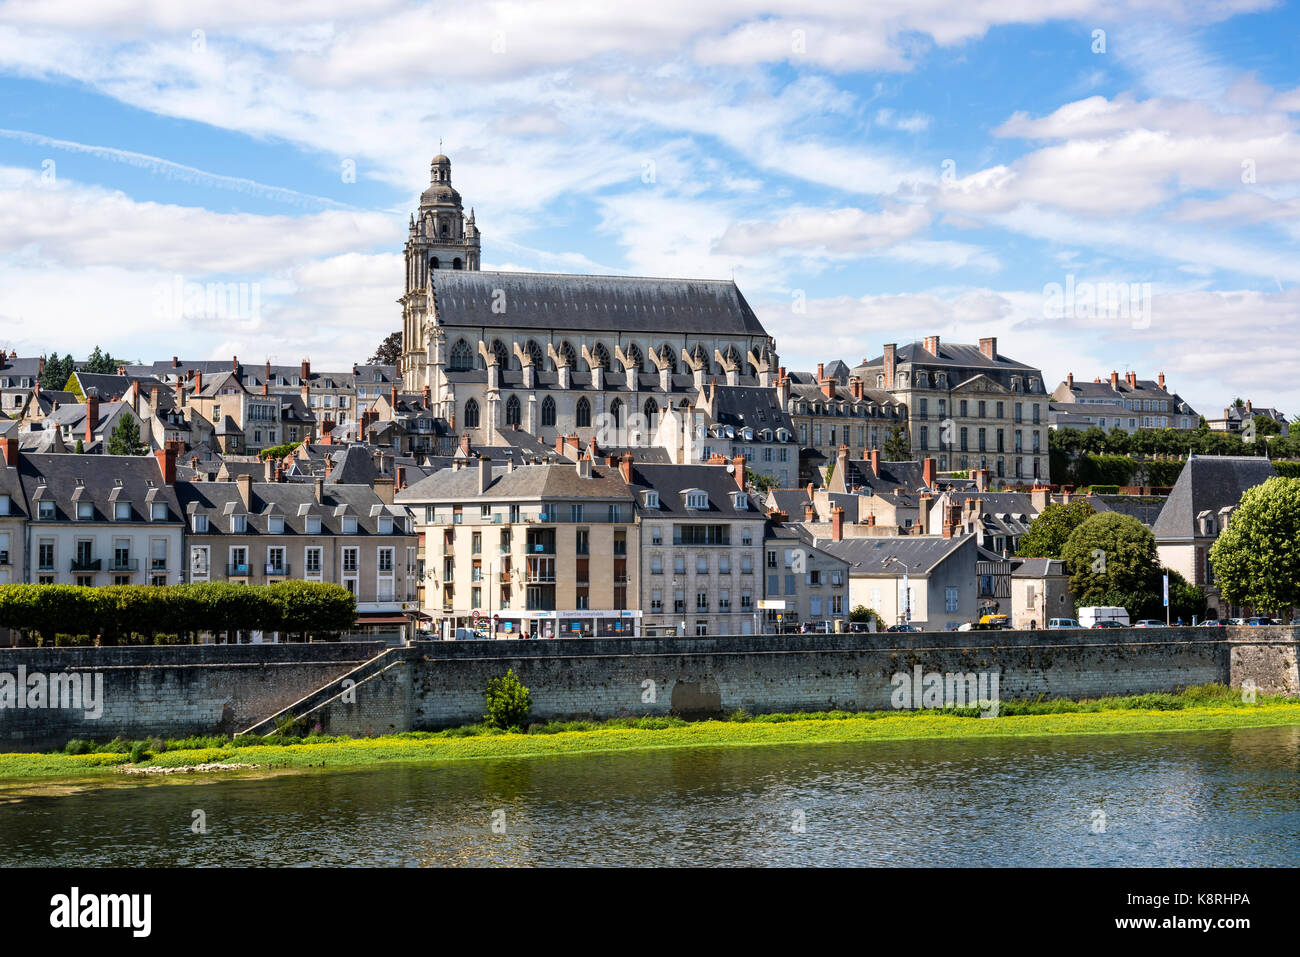 Blois, a city and the capital of Loir-et-Cher department in central France, France - Stock Image